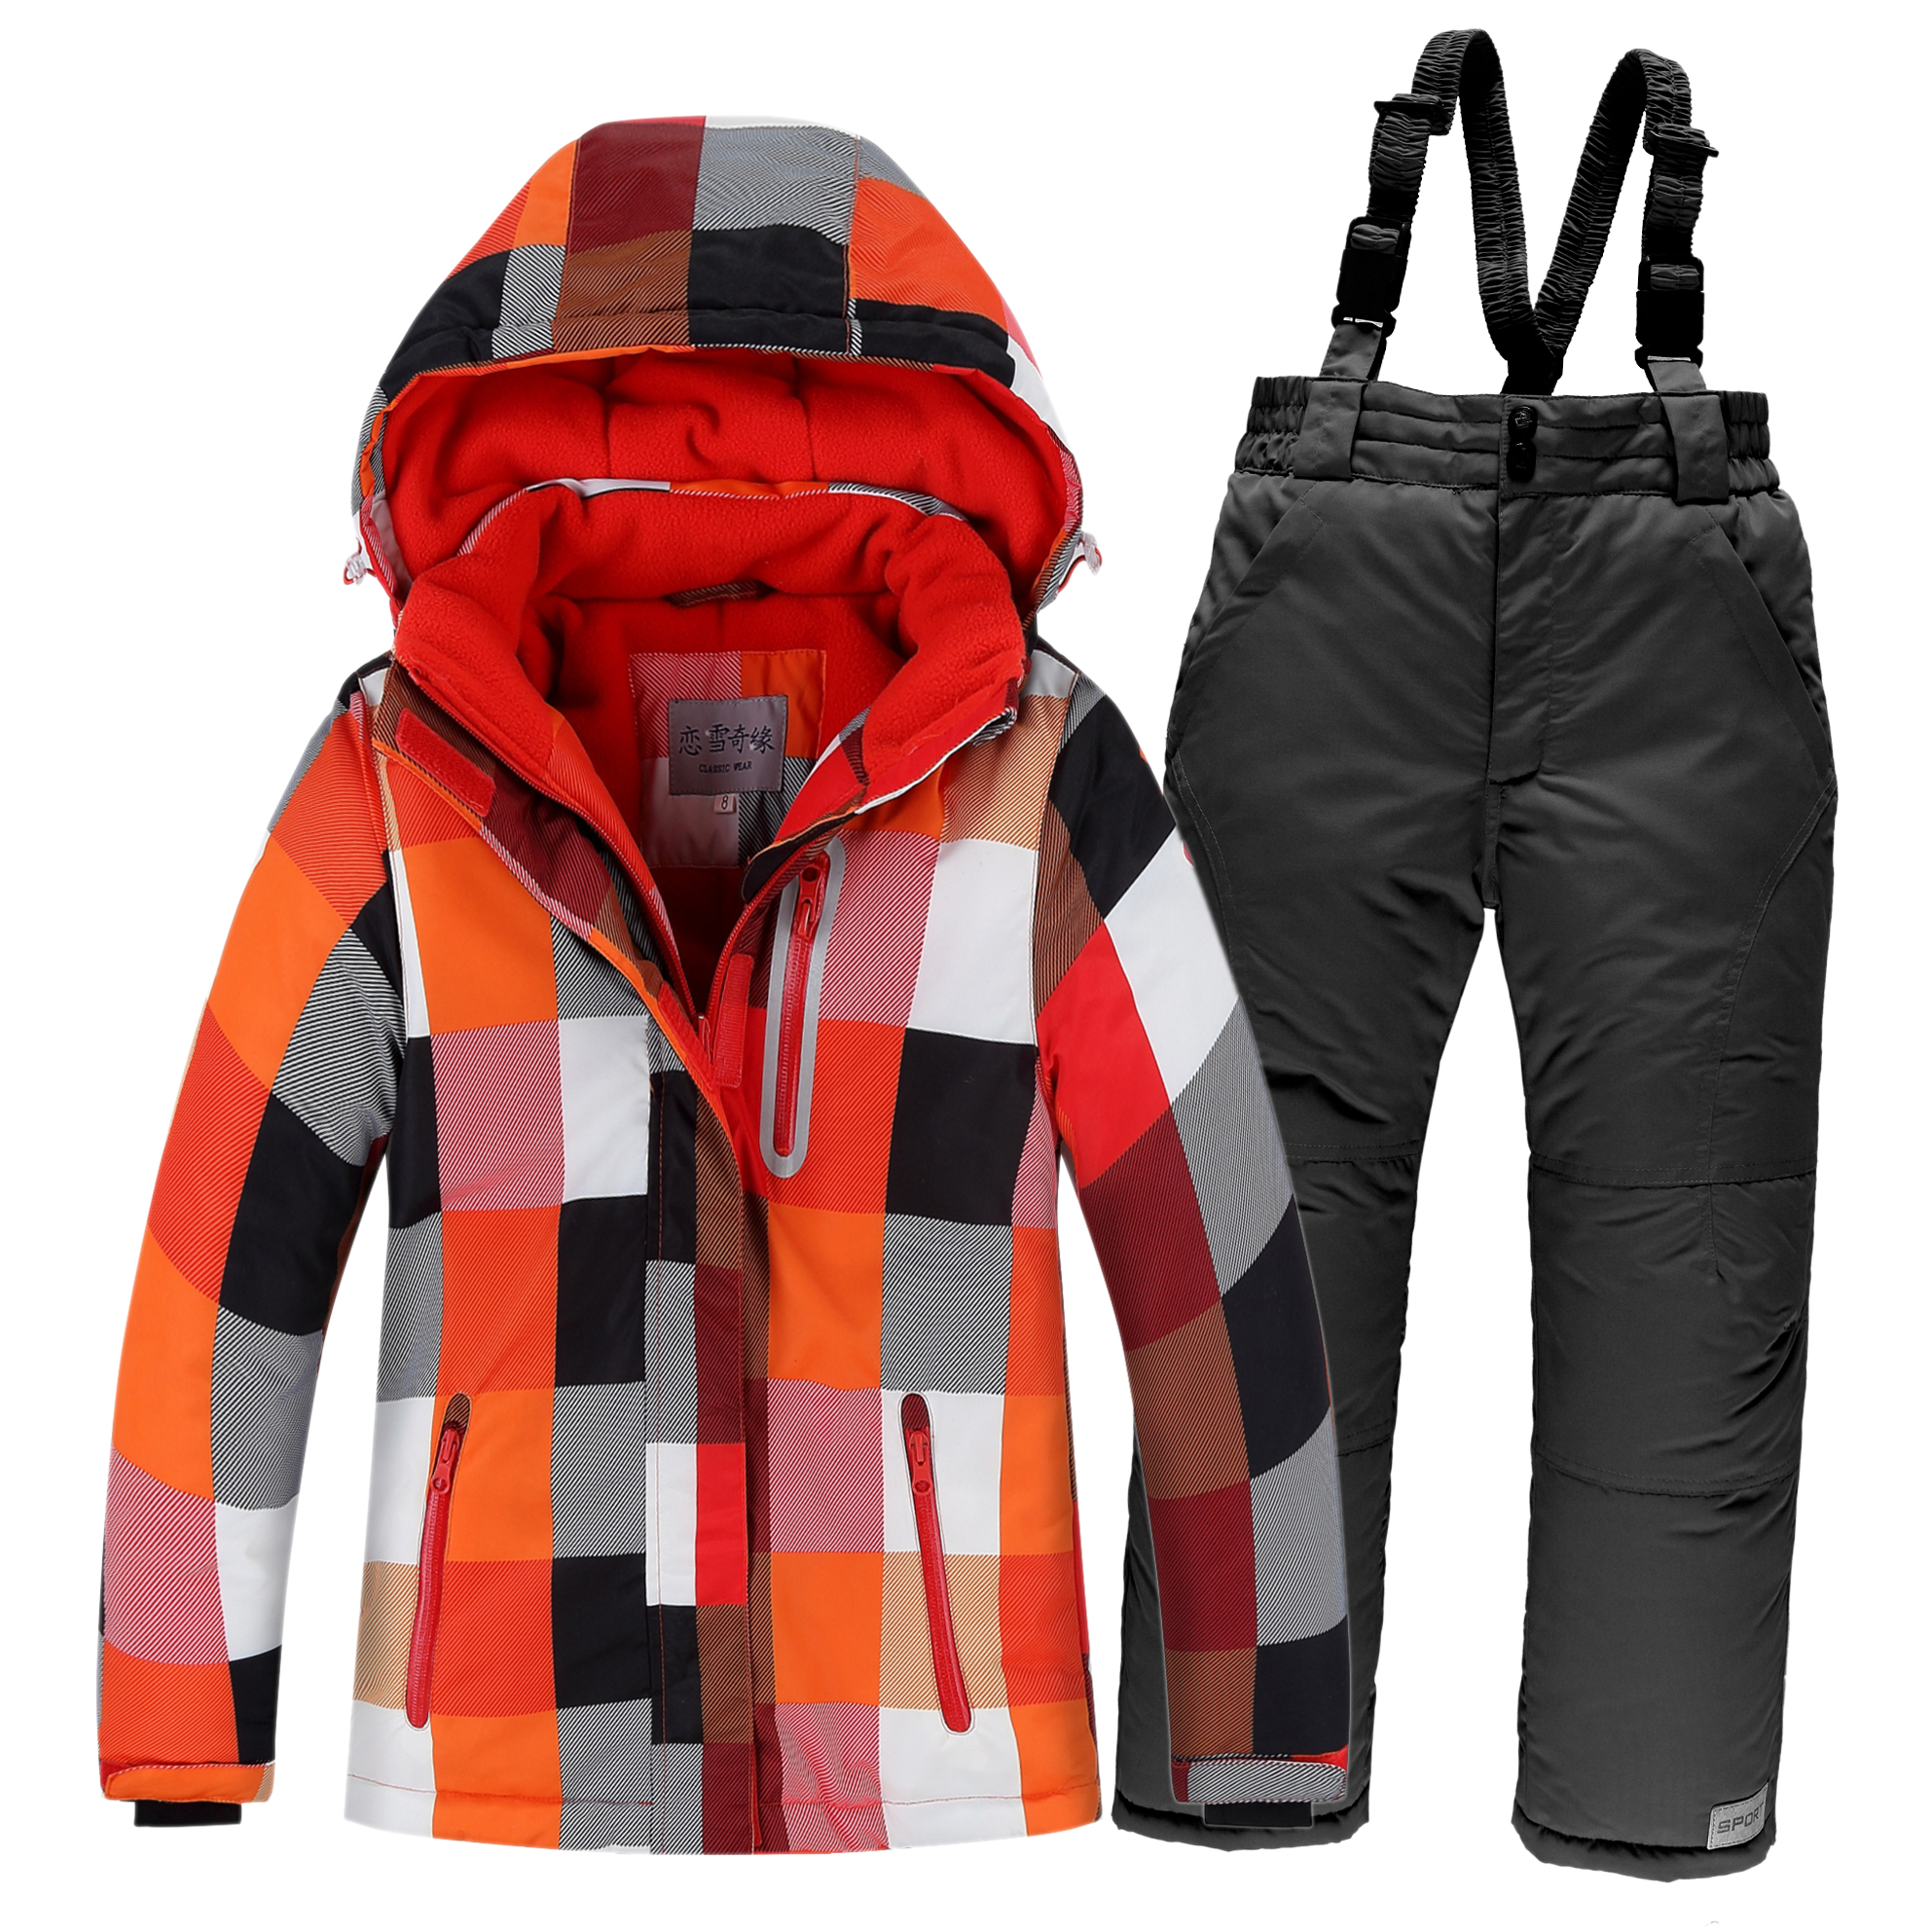 For -30 Degree Children Outerwear Warm Coat Sporty Ski Suit Kids Clothes Sets Waterproof Windproof Boys Jackets For 3-16T gsou sfor 30 degree warm coat sporty ski suit waterproof windproof girls jackets kids clothes sets children outerwear for 3 16t